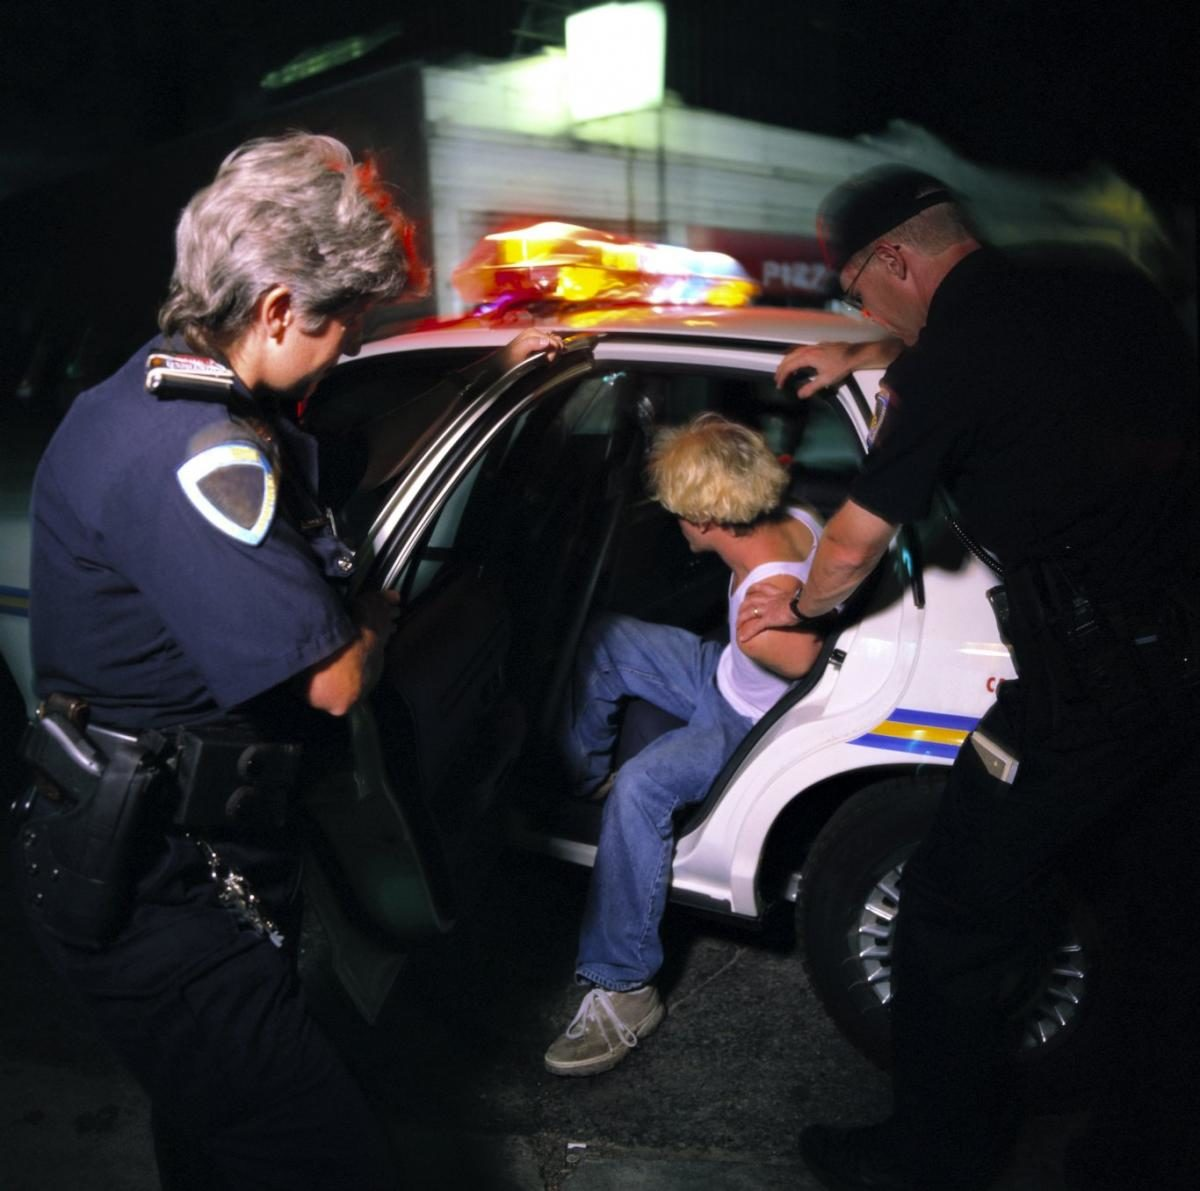 Aggressive New Intoxicated Driving Campaign